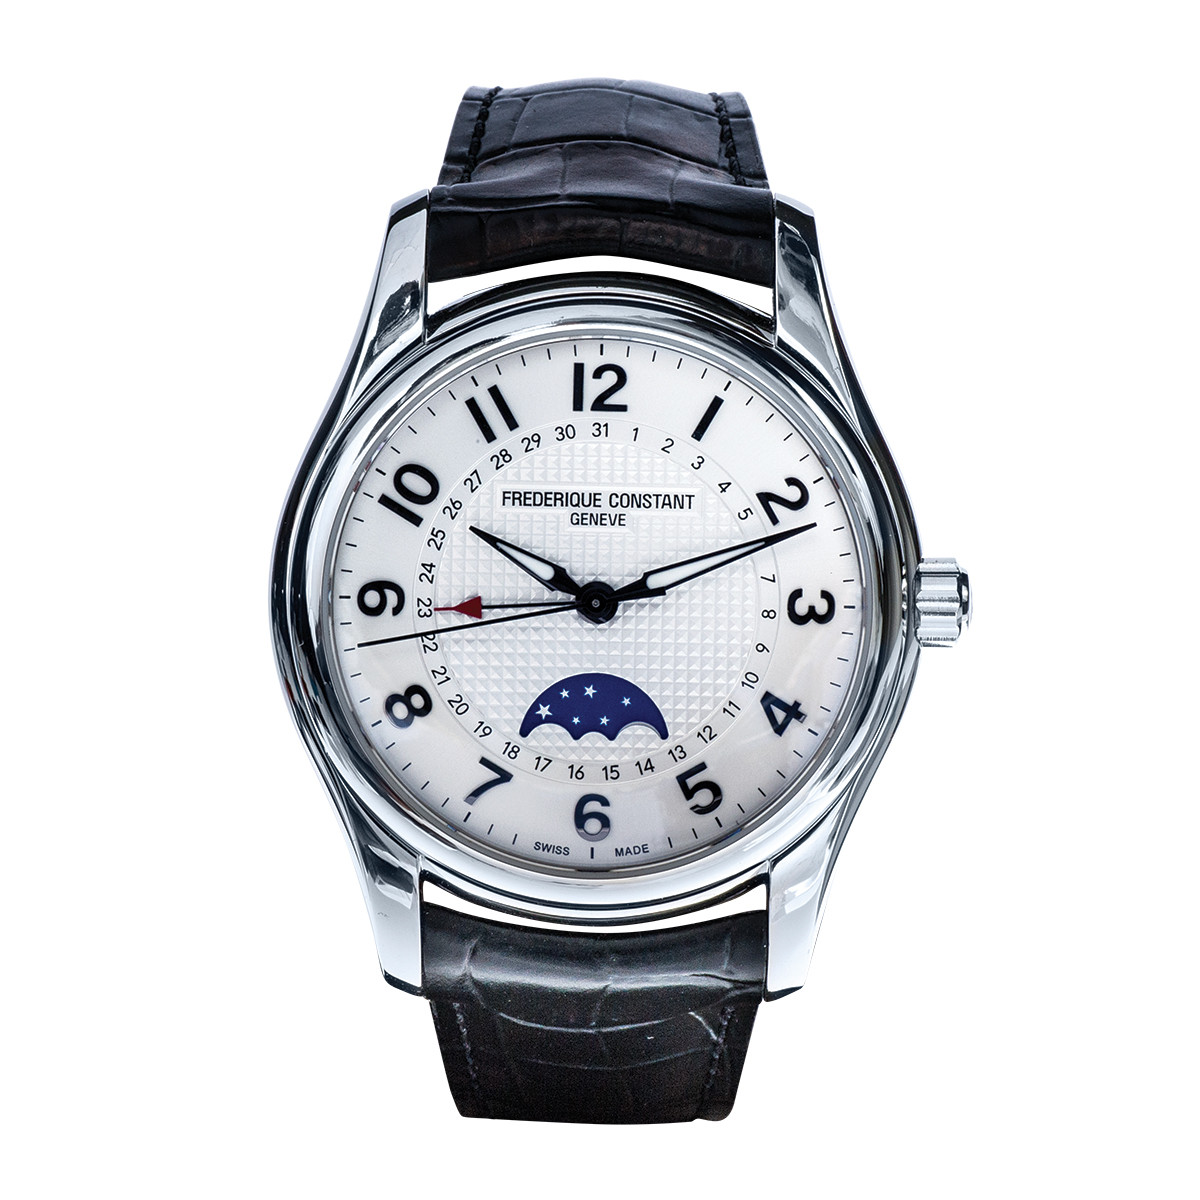 Preowned Frederique Constant Runabout Moonphase Watch